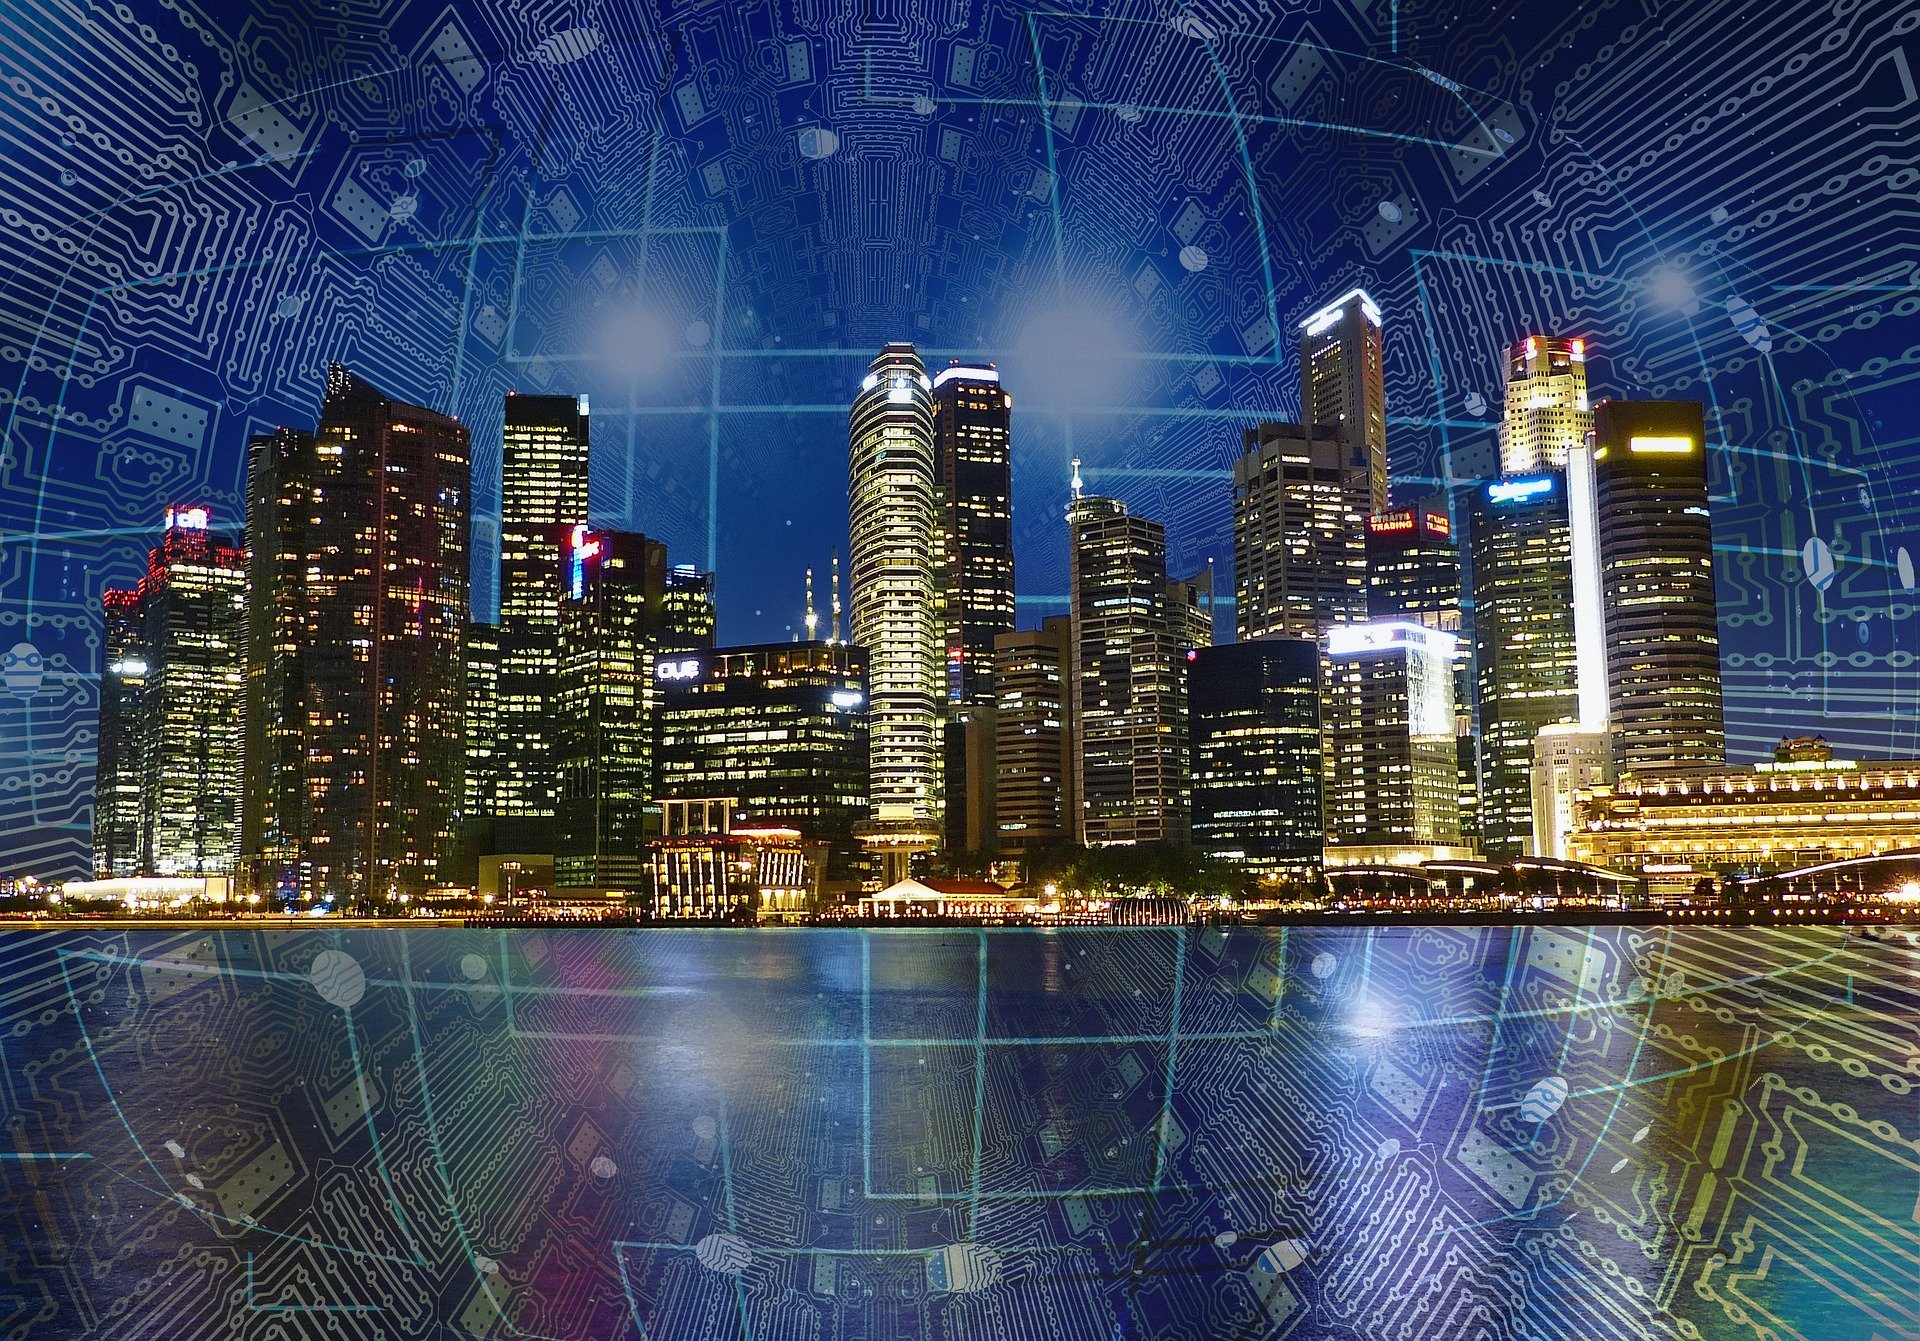 GovTech expert shares challenges and considerations of building a smart city